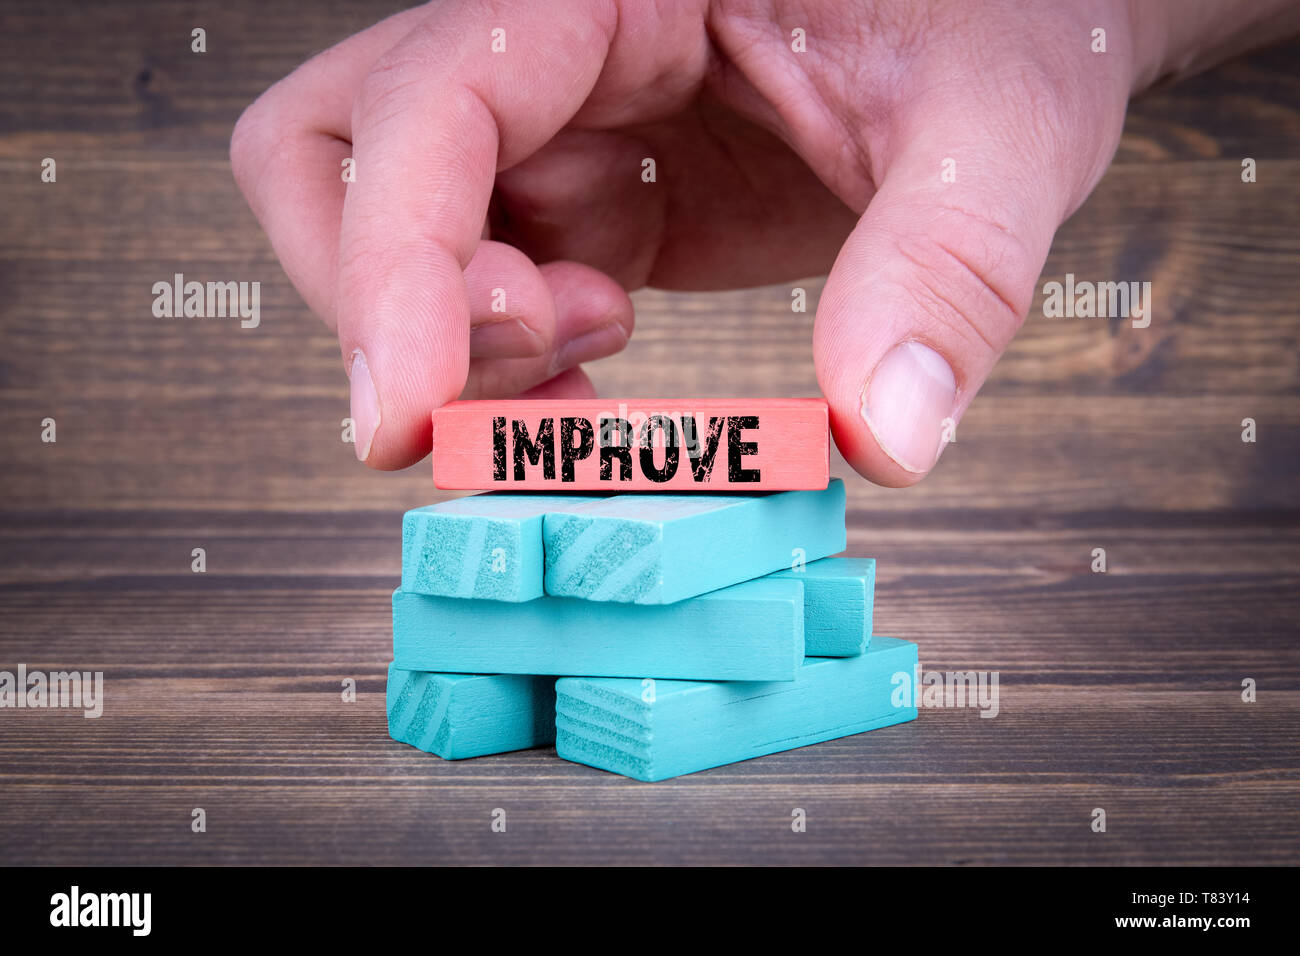 IMPROVE concept, With Colorful Wooden Blocks - Stock Image